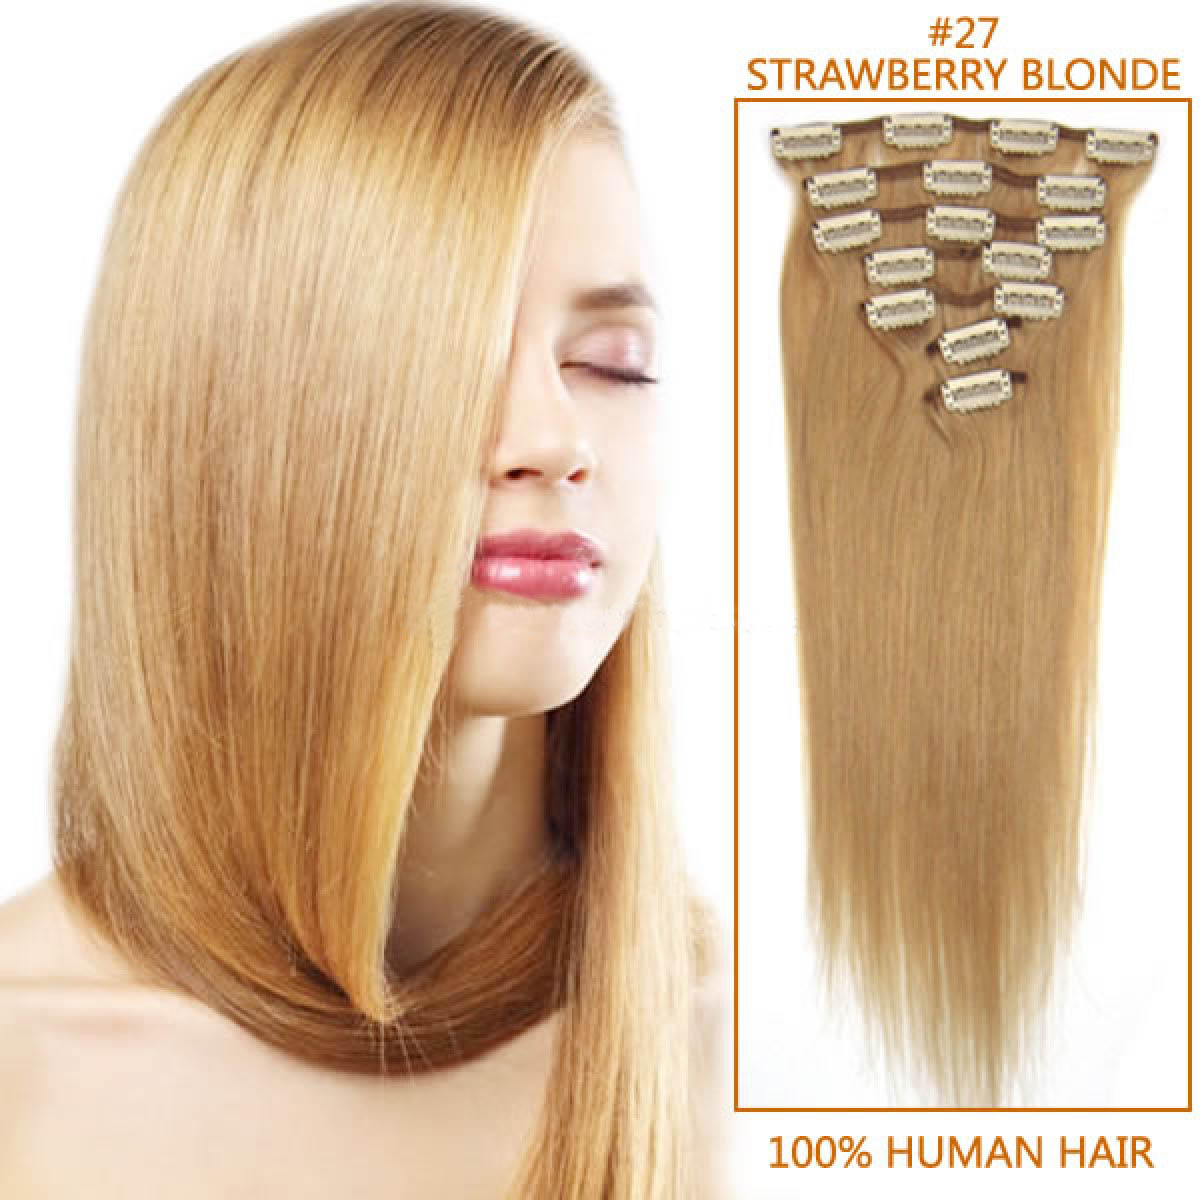 30 Inch 27 Strawberry Blonde Clip In Remy Human Hair Extensions 9pcs